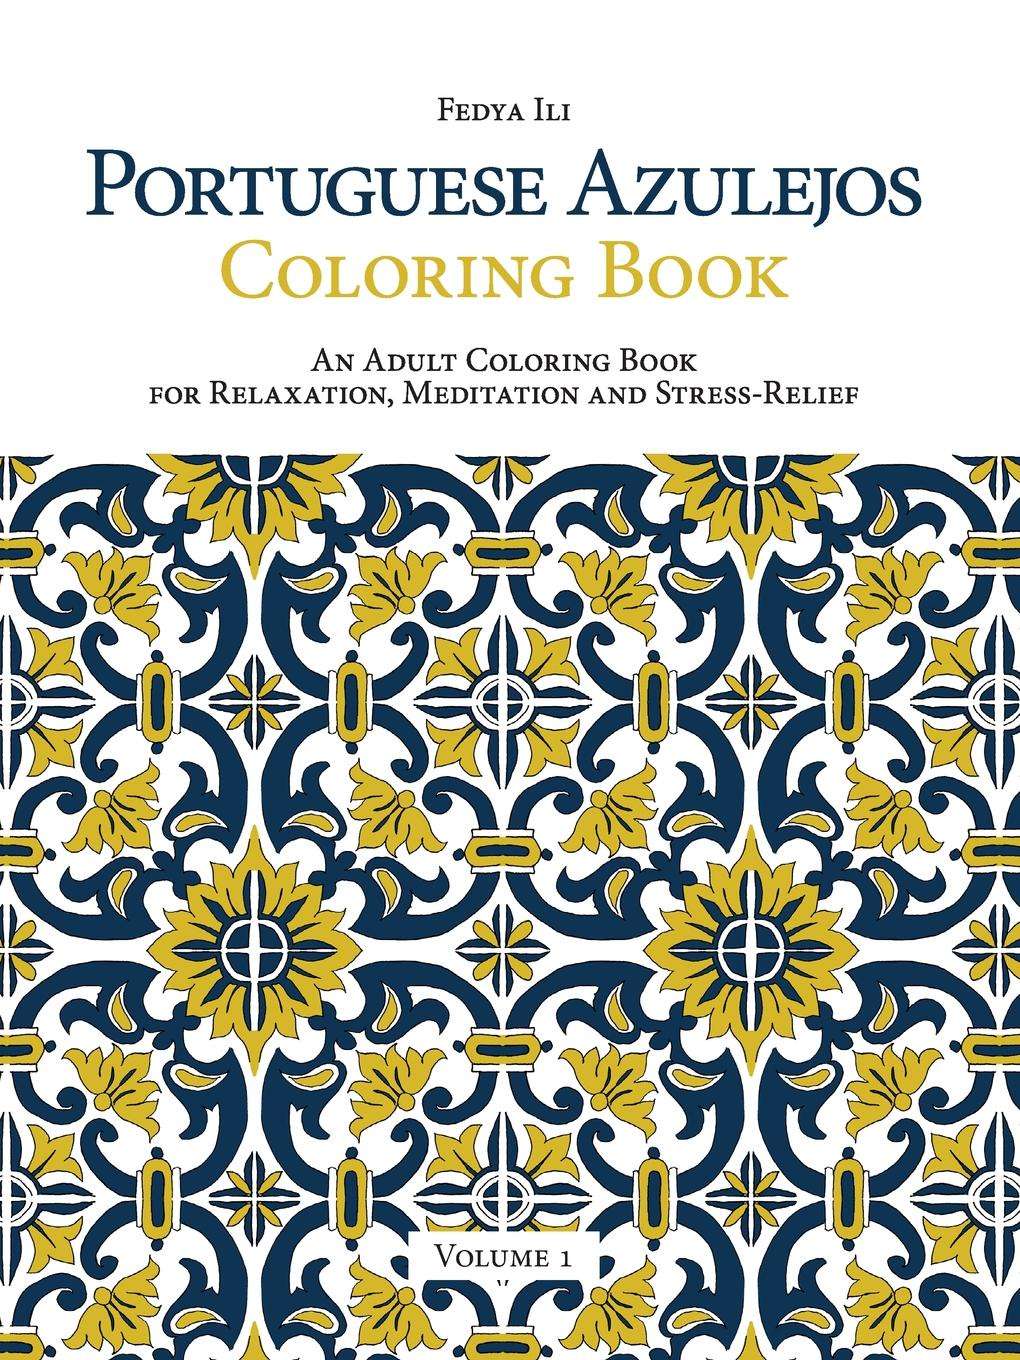 Fedya Ili Portuguese Azulejos Coloring Book. An Adult Coloring Book for Relaxation, Meditation and Stress-Relief (Volume 1) printio vstre4a ili rastovanie